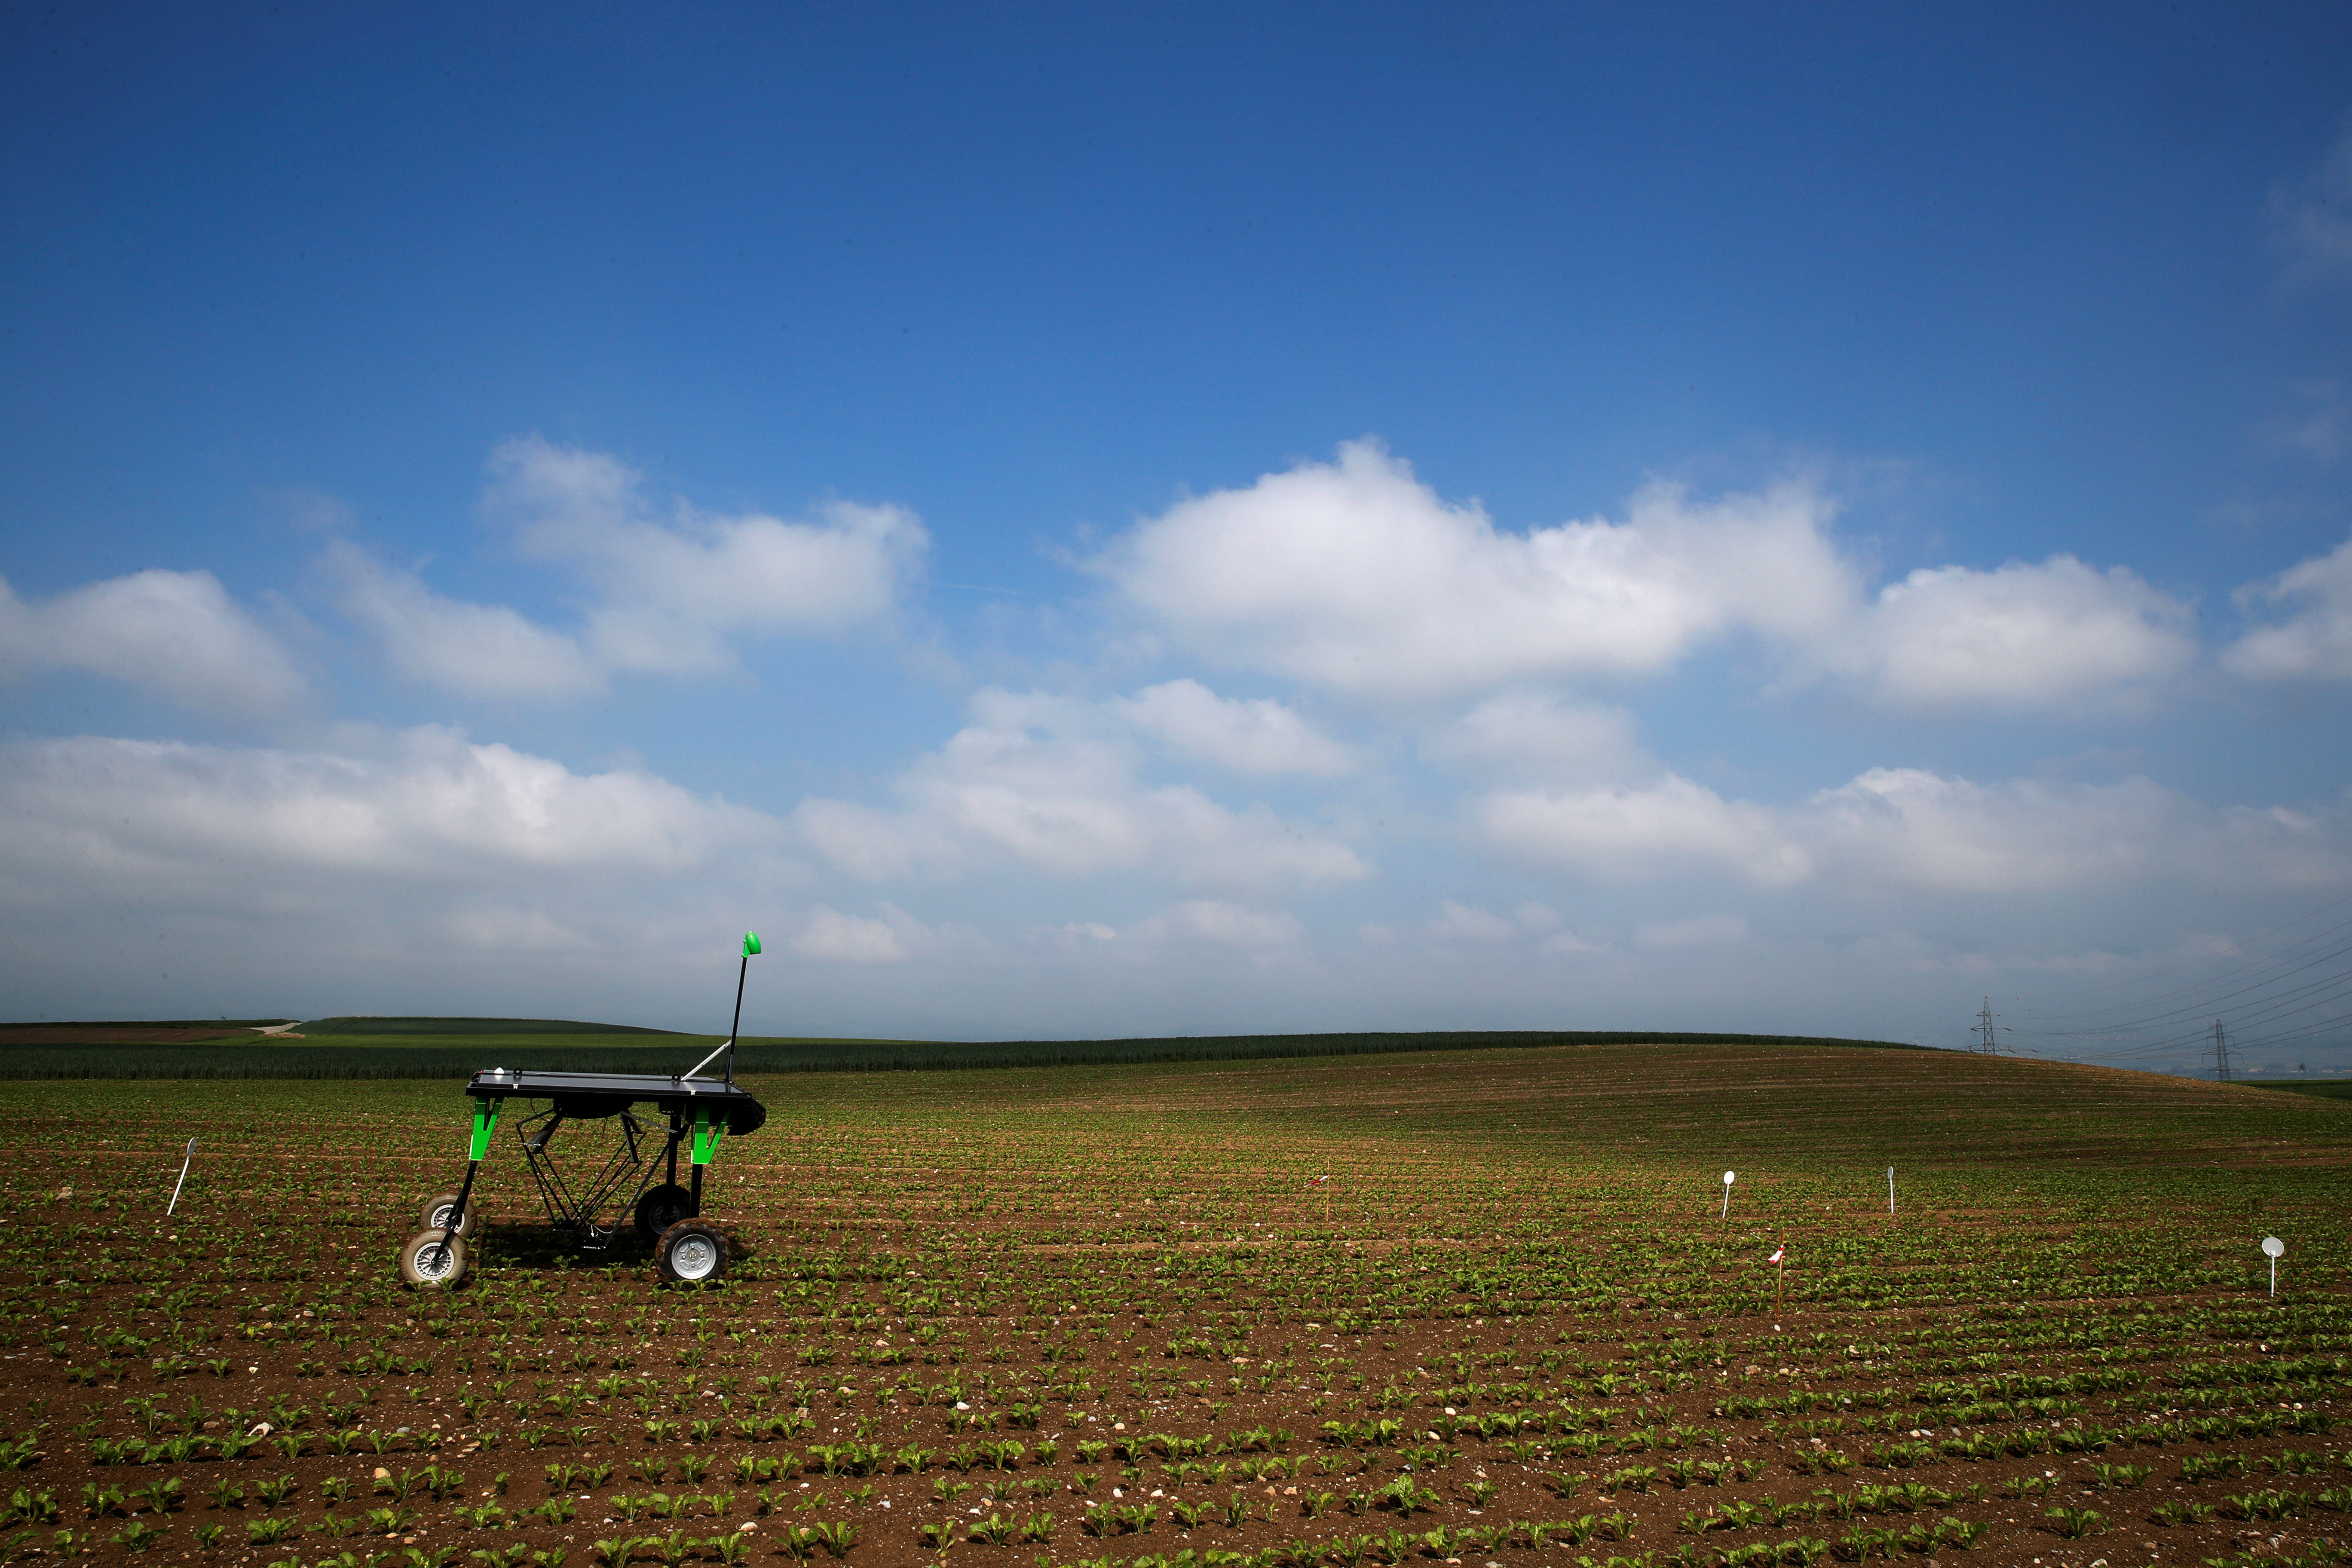 The prototype of an autonomous weeding machine by Swiss start-up ecoRobotix is pictured during tests on a sugar beet field near Bavois, Switzerland May 18, 2018. Picture taken May, 18, 2018. REUTERS/Denis Balibouse - RC18908CB500